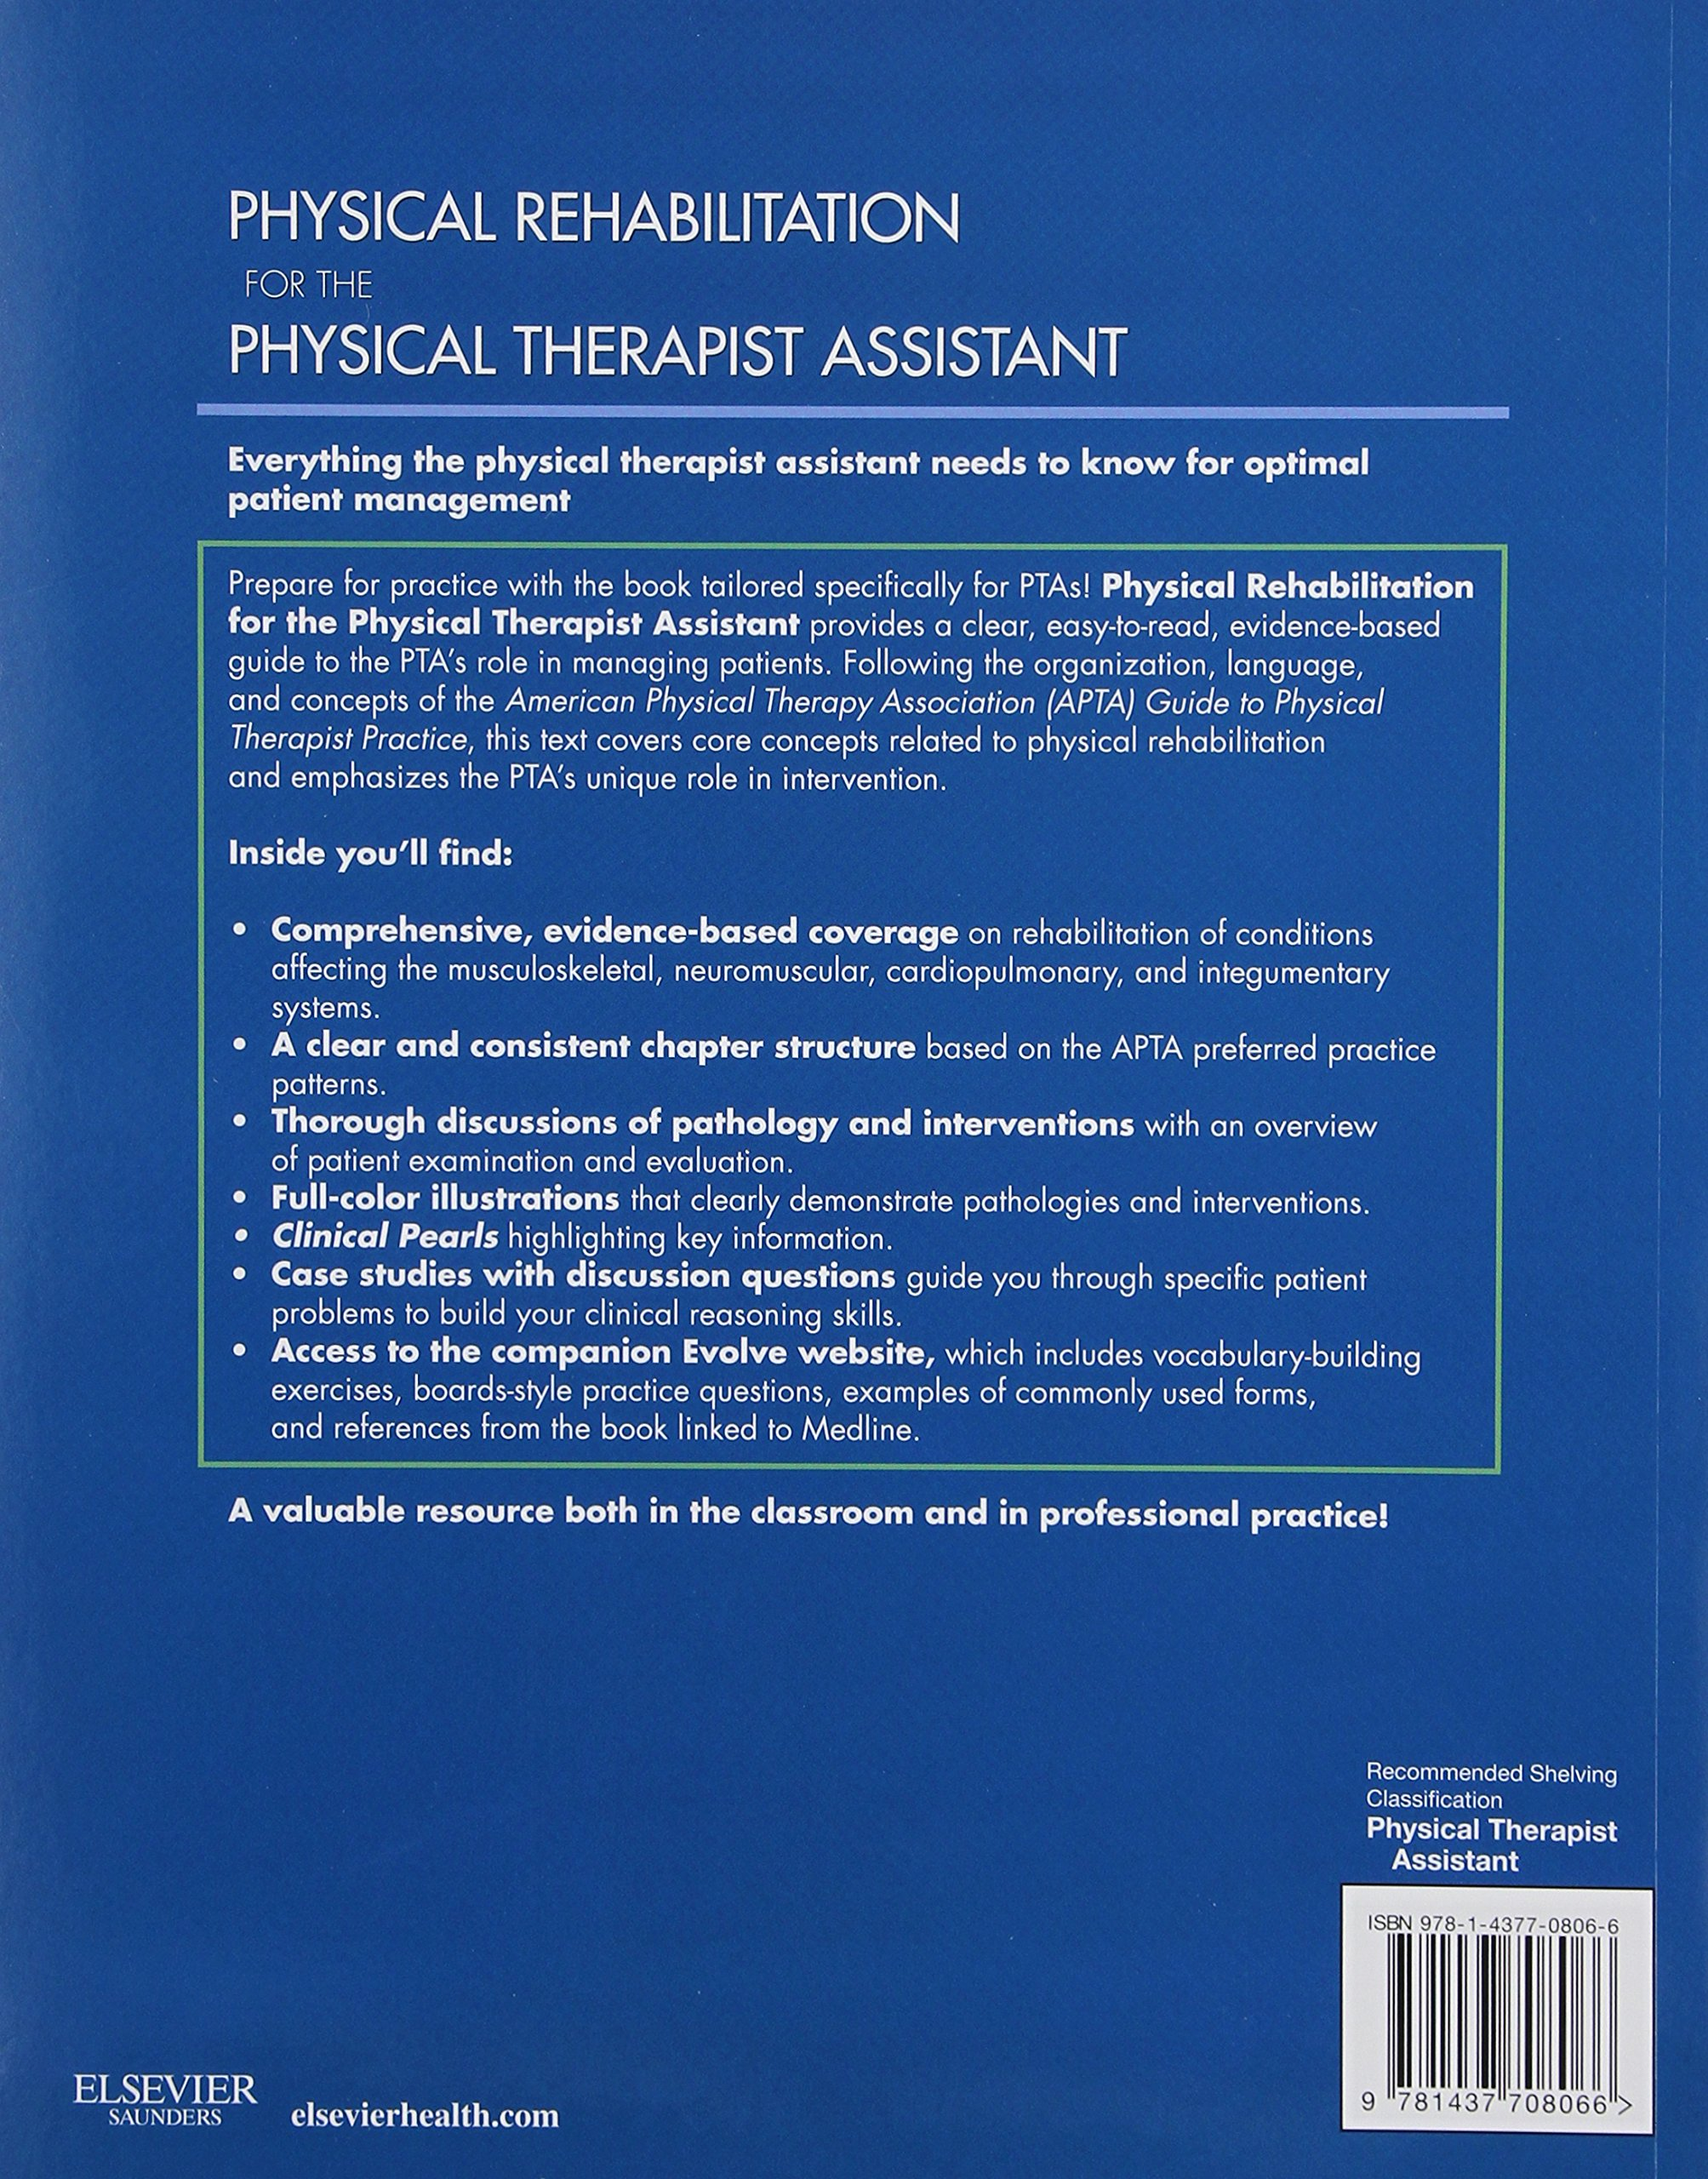 Generalist physical therapy - Physical Rehabilitation For The Physical Therapist Assistant Michelle H Cameron Md Pt Ocs Linda Monroe Mpt Ocs 0001437708064 Occupational Therapy